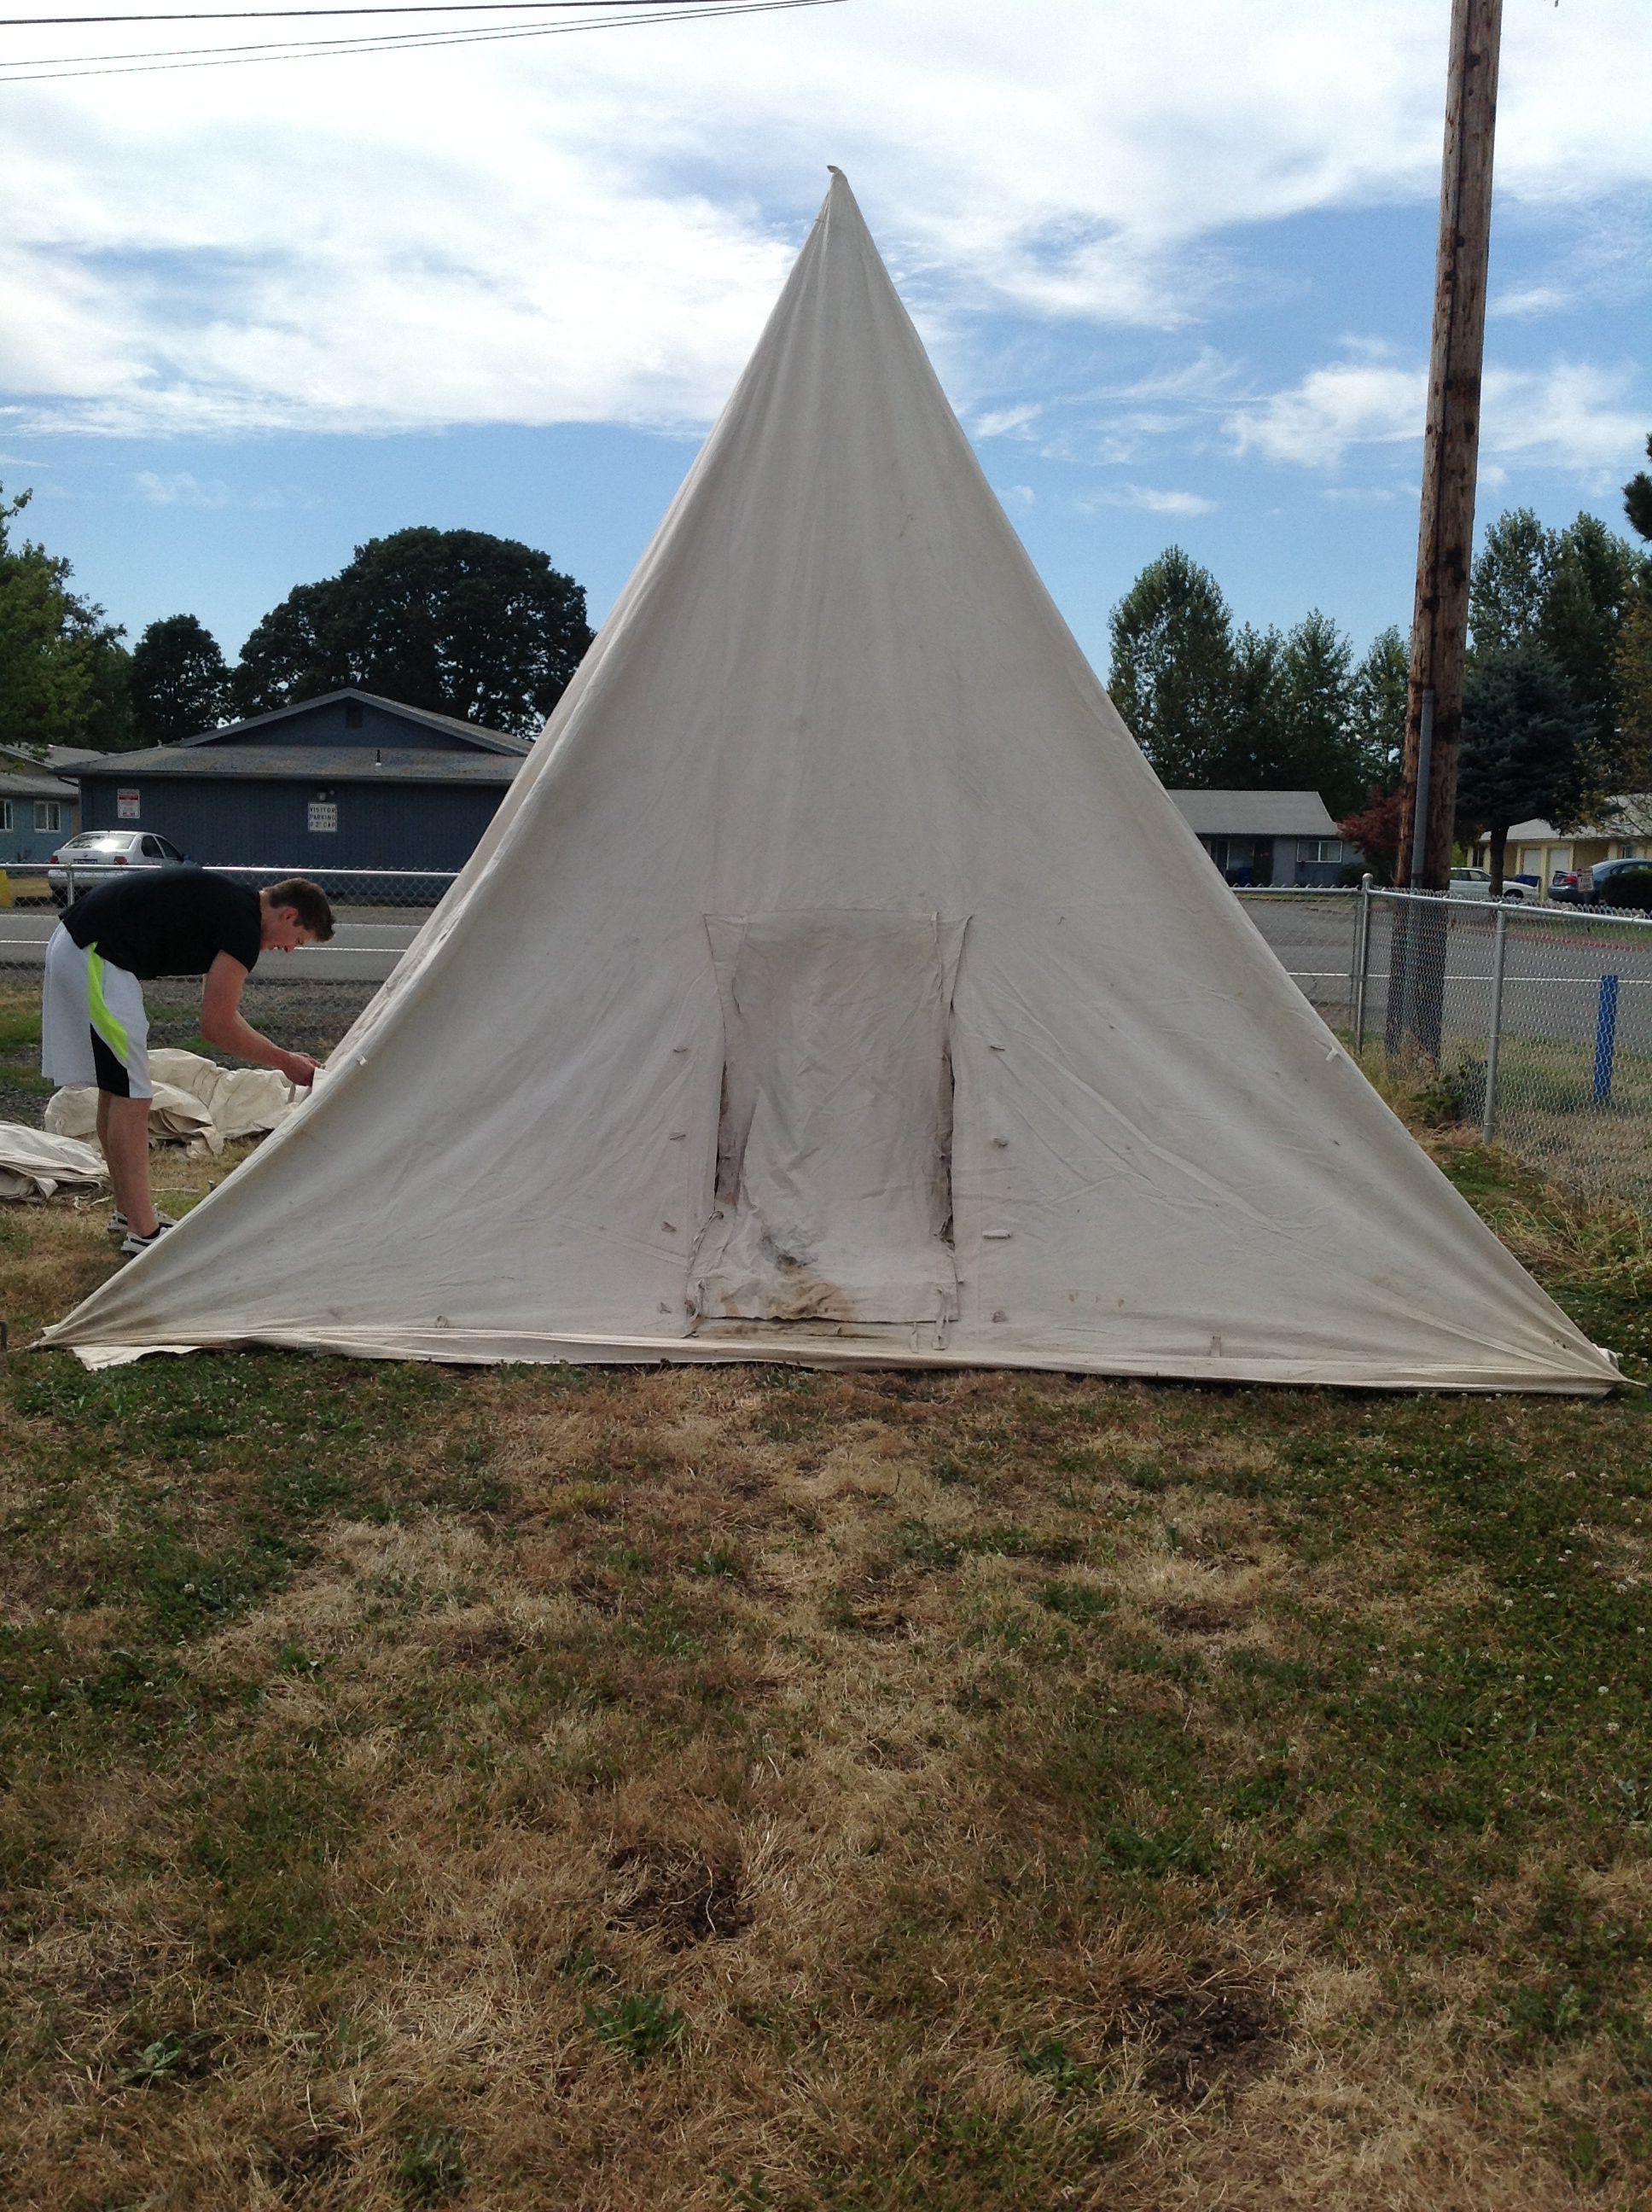 Pyramid tent pre1900 canvas uses one pole on two parts to hold tent up. Can be set up by one woman if necessary. & Pyramid tent pre1900 canvas uses one pole on two parts to hold ...